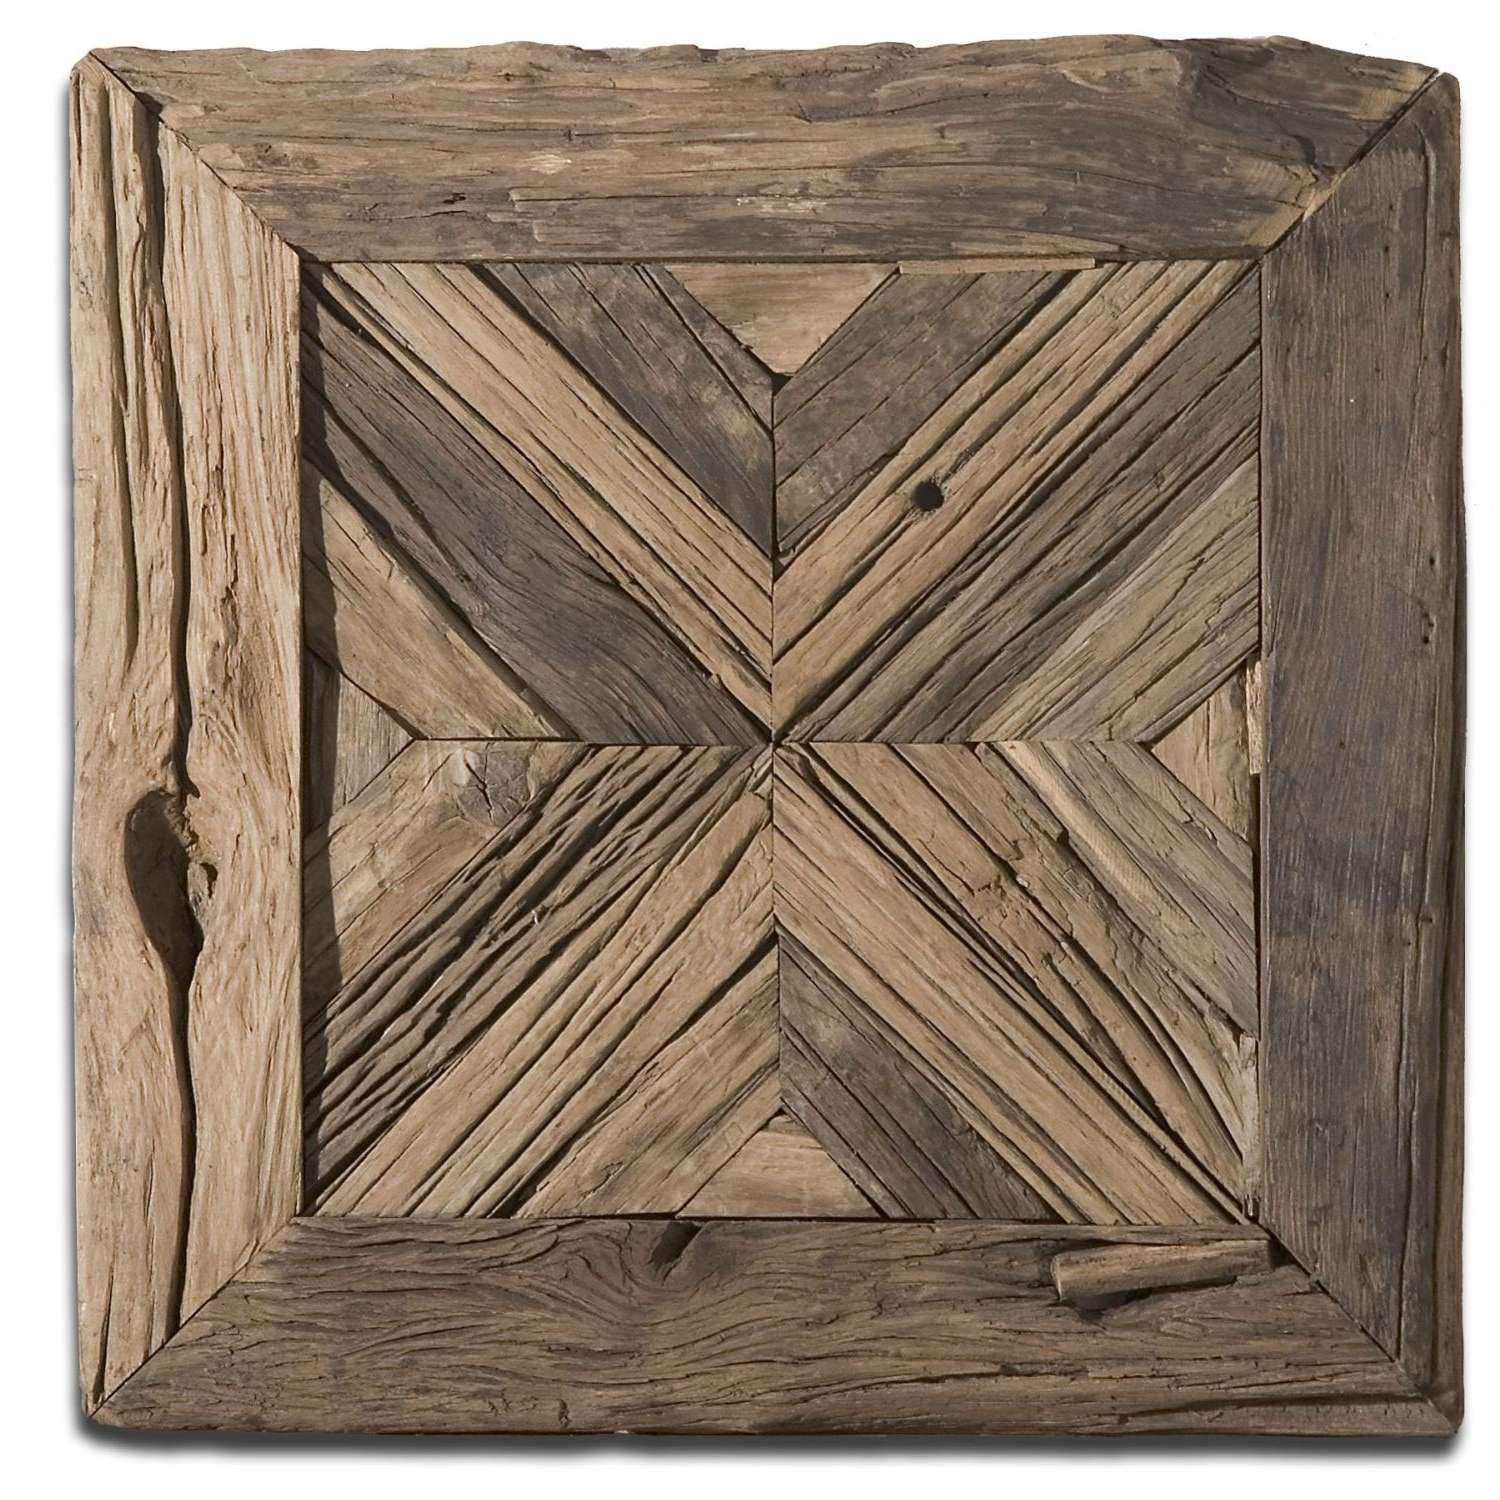 Preferred Rustic Wood And Metal Wall Decor Rennick Rustic Wood Wall Art 04014 Regarding Rustic Metal Wall Art (Gallery 19 of 20)